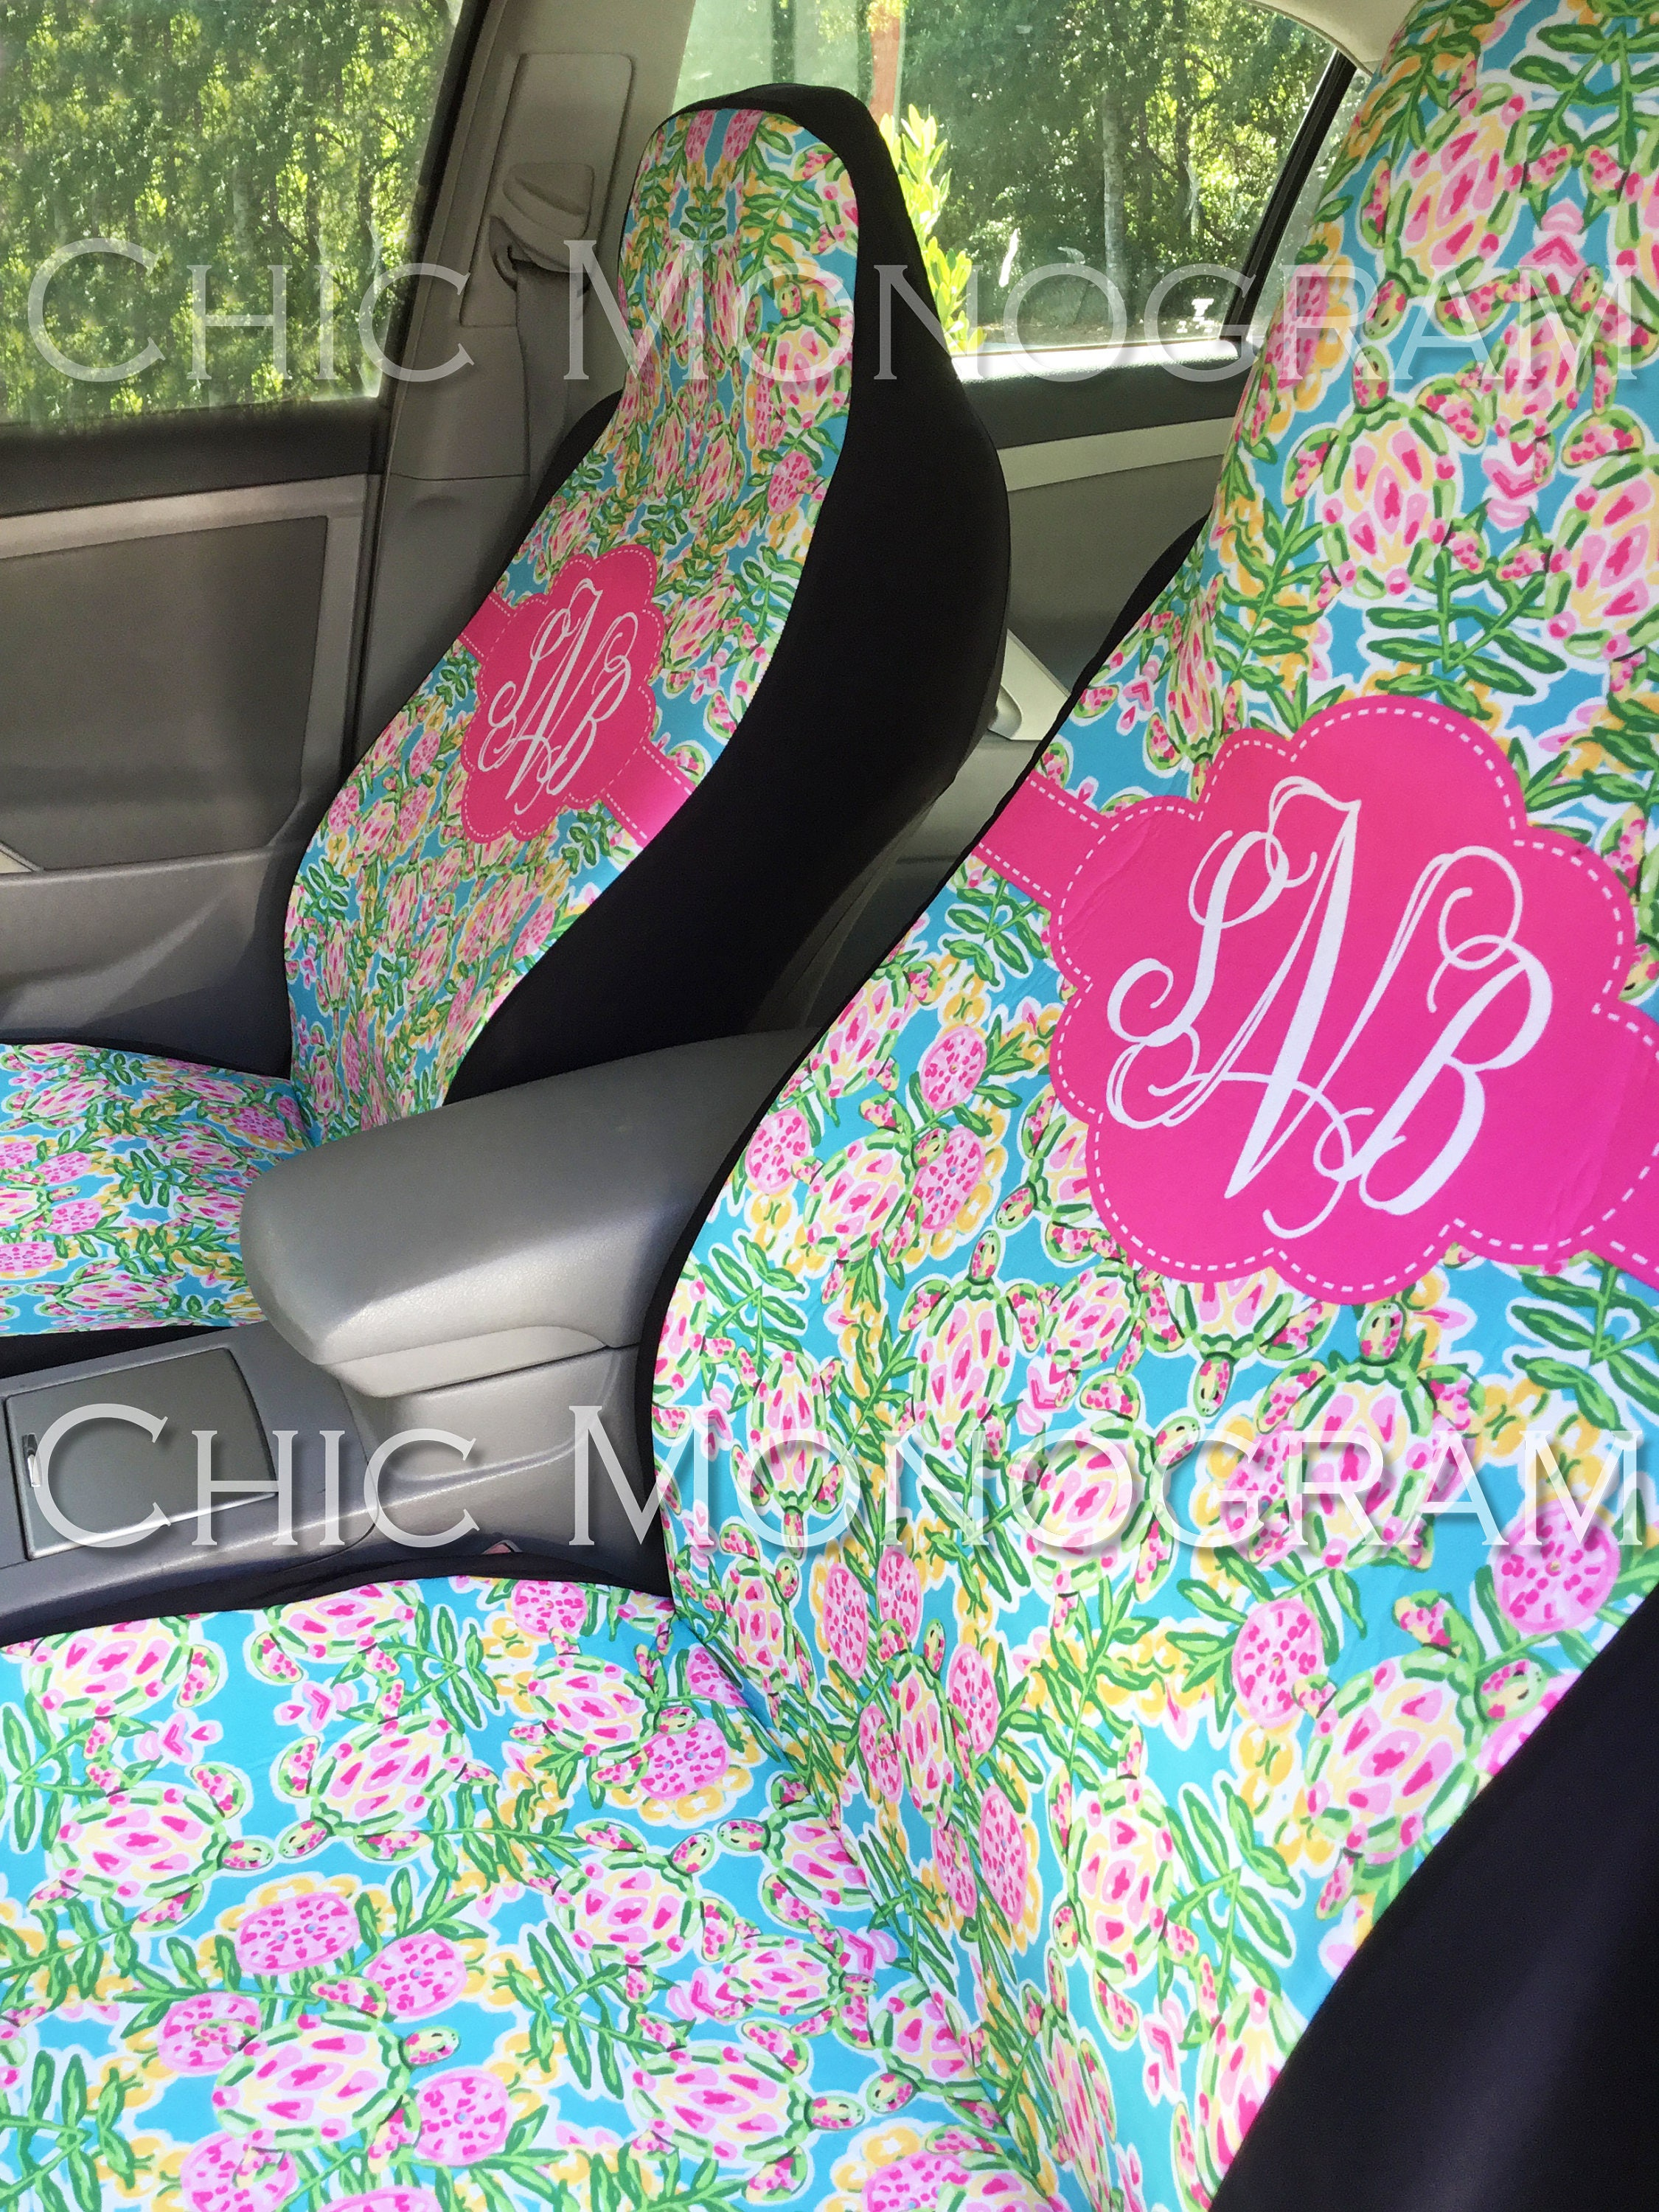 Sea Turtle Car Accessories Seat Covers For Vehicle Front Floor Mats Monogram Swimming Turtles Lilly